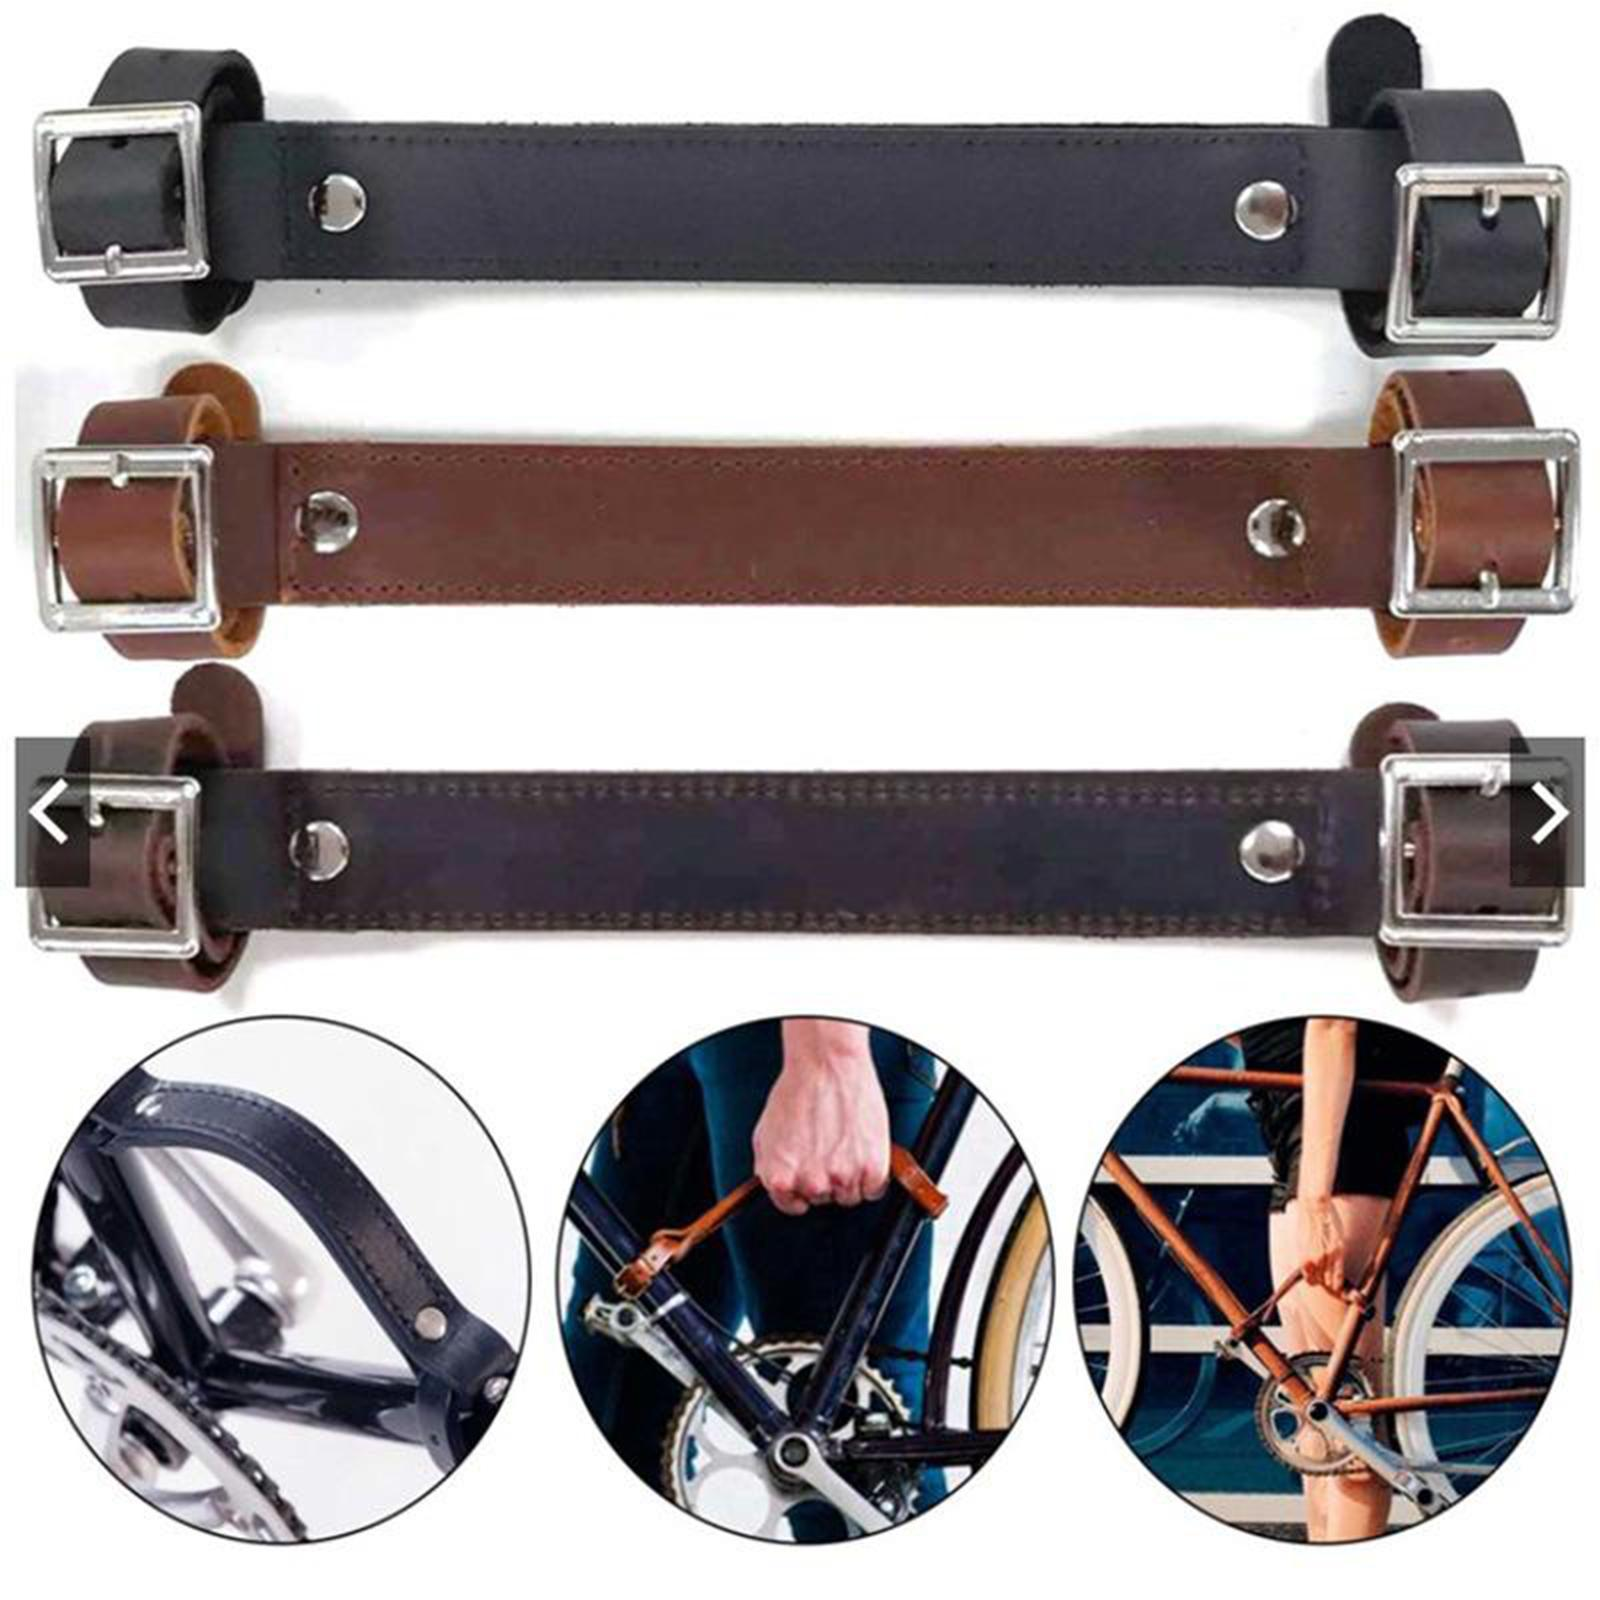 thumbnail 6 - Durable Bike Frame Handle High Strength Carry Strap Carrier Transport Lifter